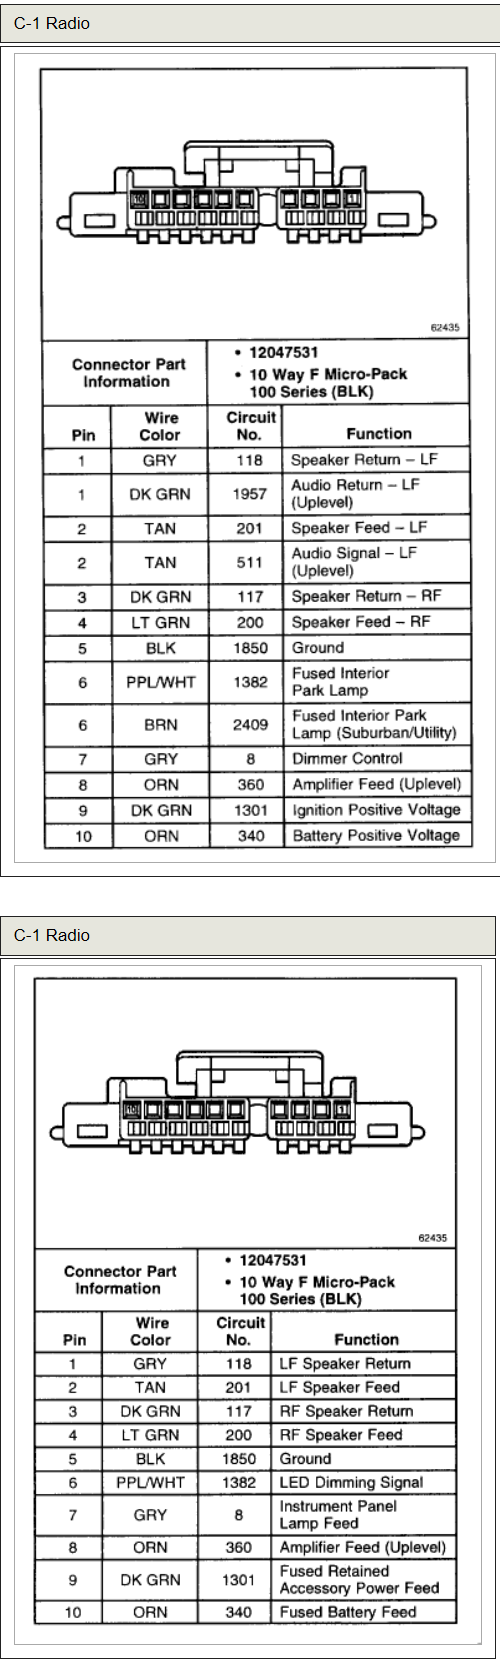 2005 Chevy Suburban Radio Wiring Diagram - House Wiring Diagram ...